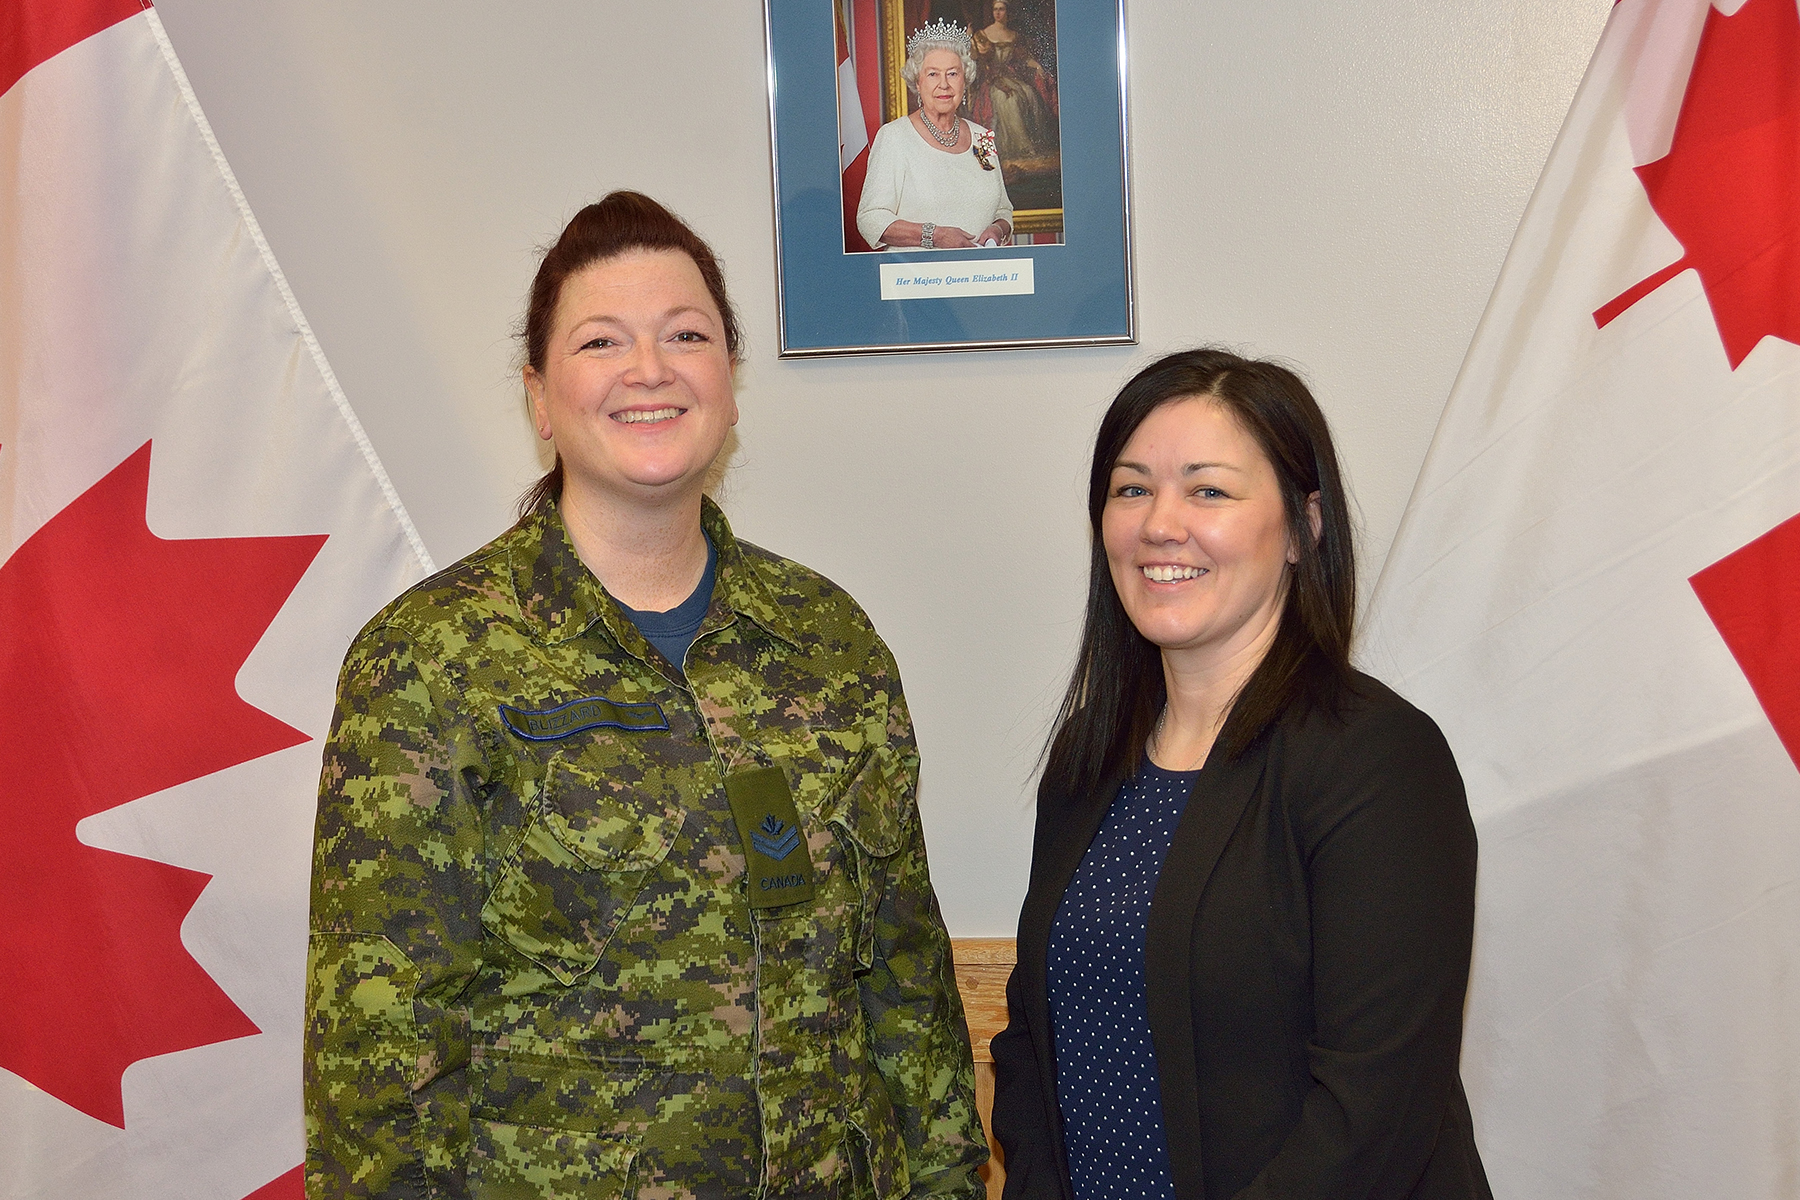 During her January 19, 2018, swearing-in ceremony, Aviator Lorna Clark (right) stands with her RCAF Reserve recruiter, Master Corporal Krista Blizzard, at 5 Wing Goose Bay, Newfoundland and Labrador. They are the first and second RCAF Reserve members from Happy Valley-Goose Bay in Labrador. PHOTO: DND, GB2018-01-012